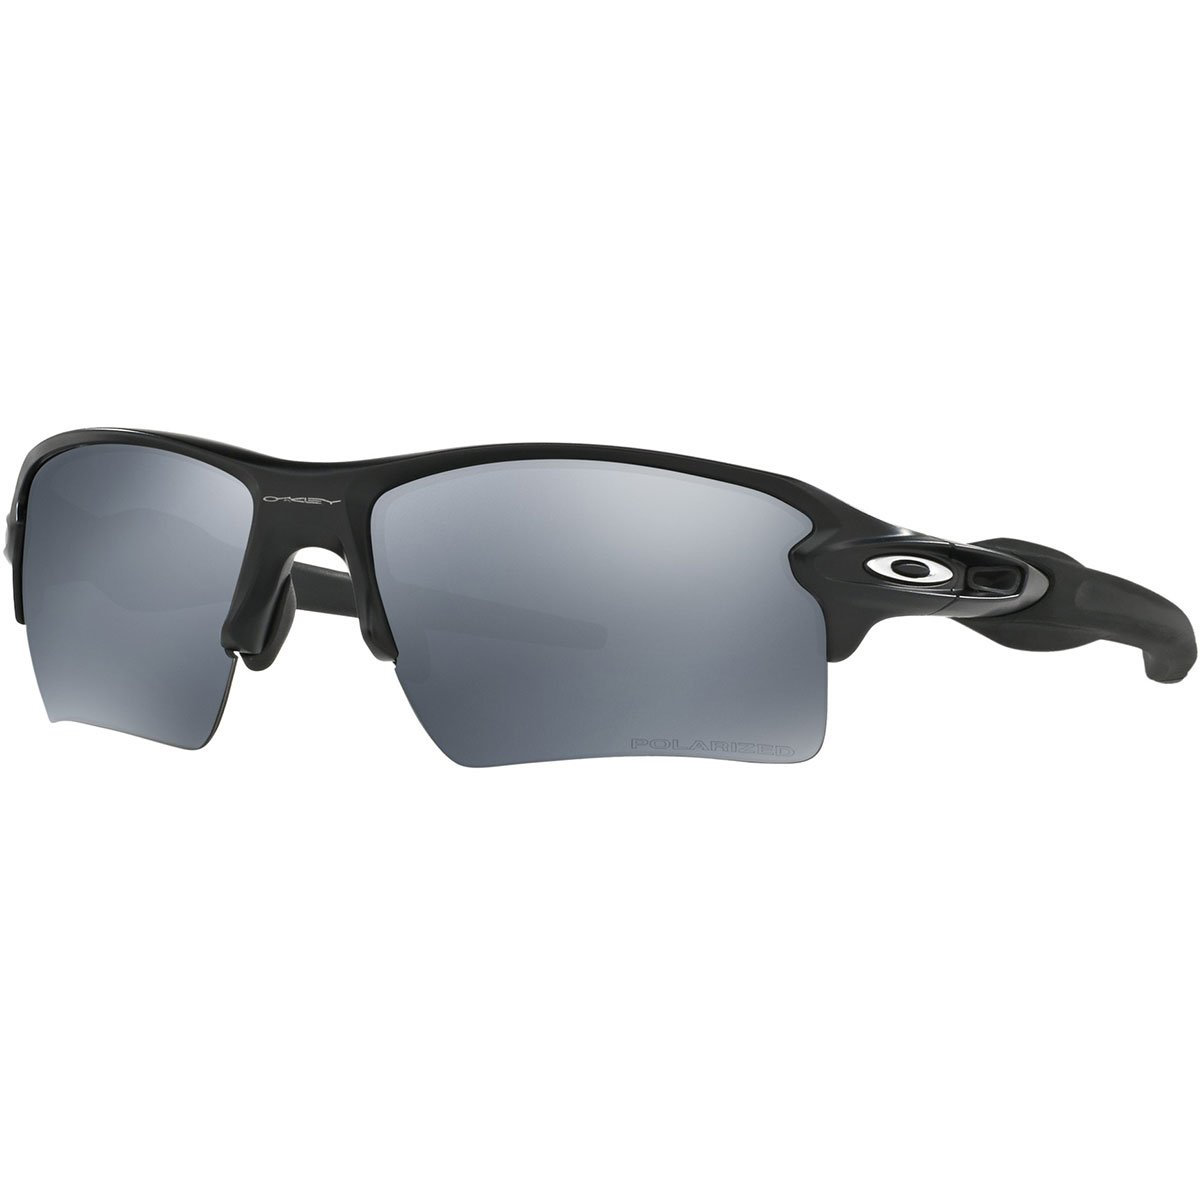 Oakley Men's Flak 2.0 Xl OO9188 Polarized Iridium Sunglasses, Matte Black w/Black Iridium Polarized, 59 mm